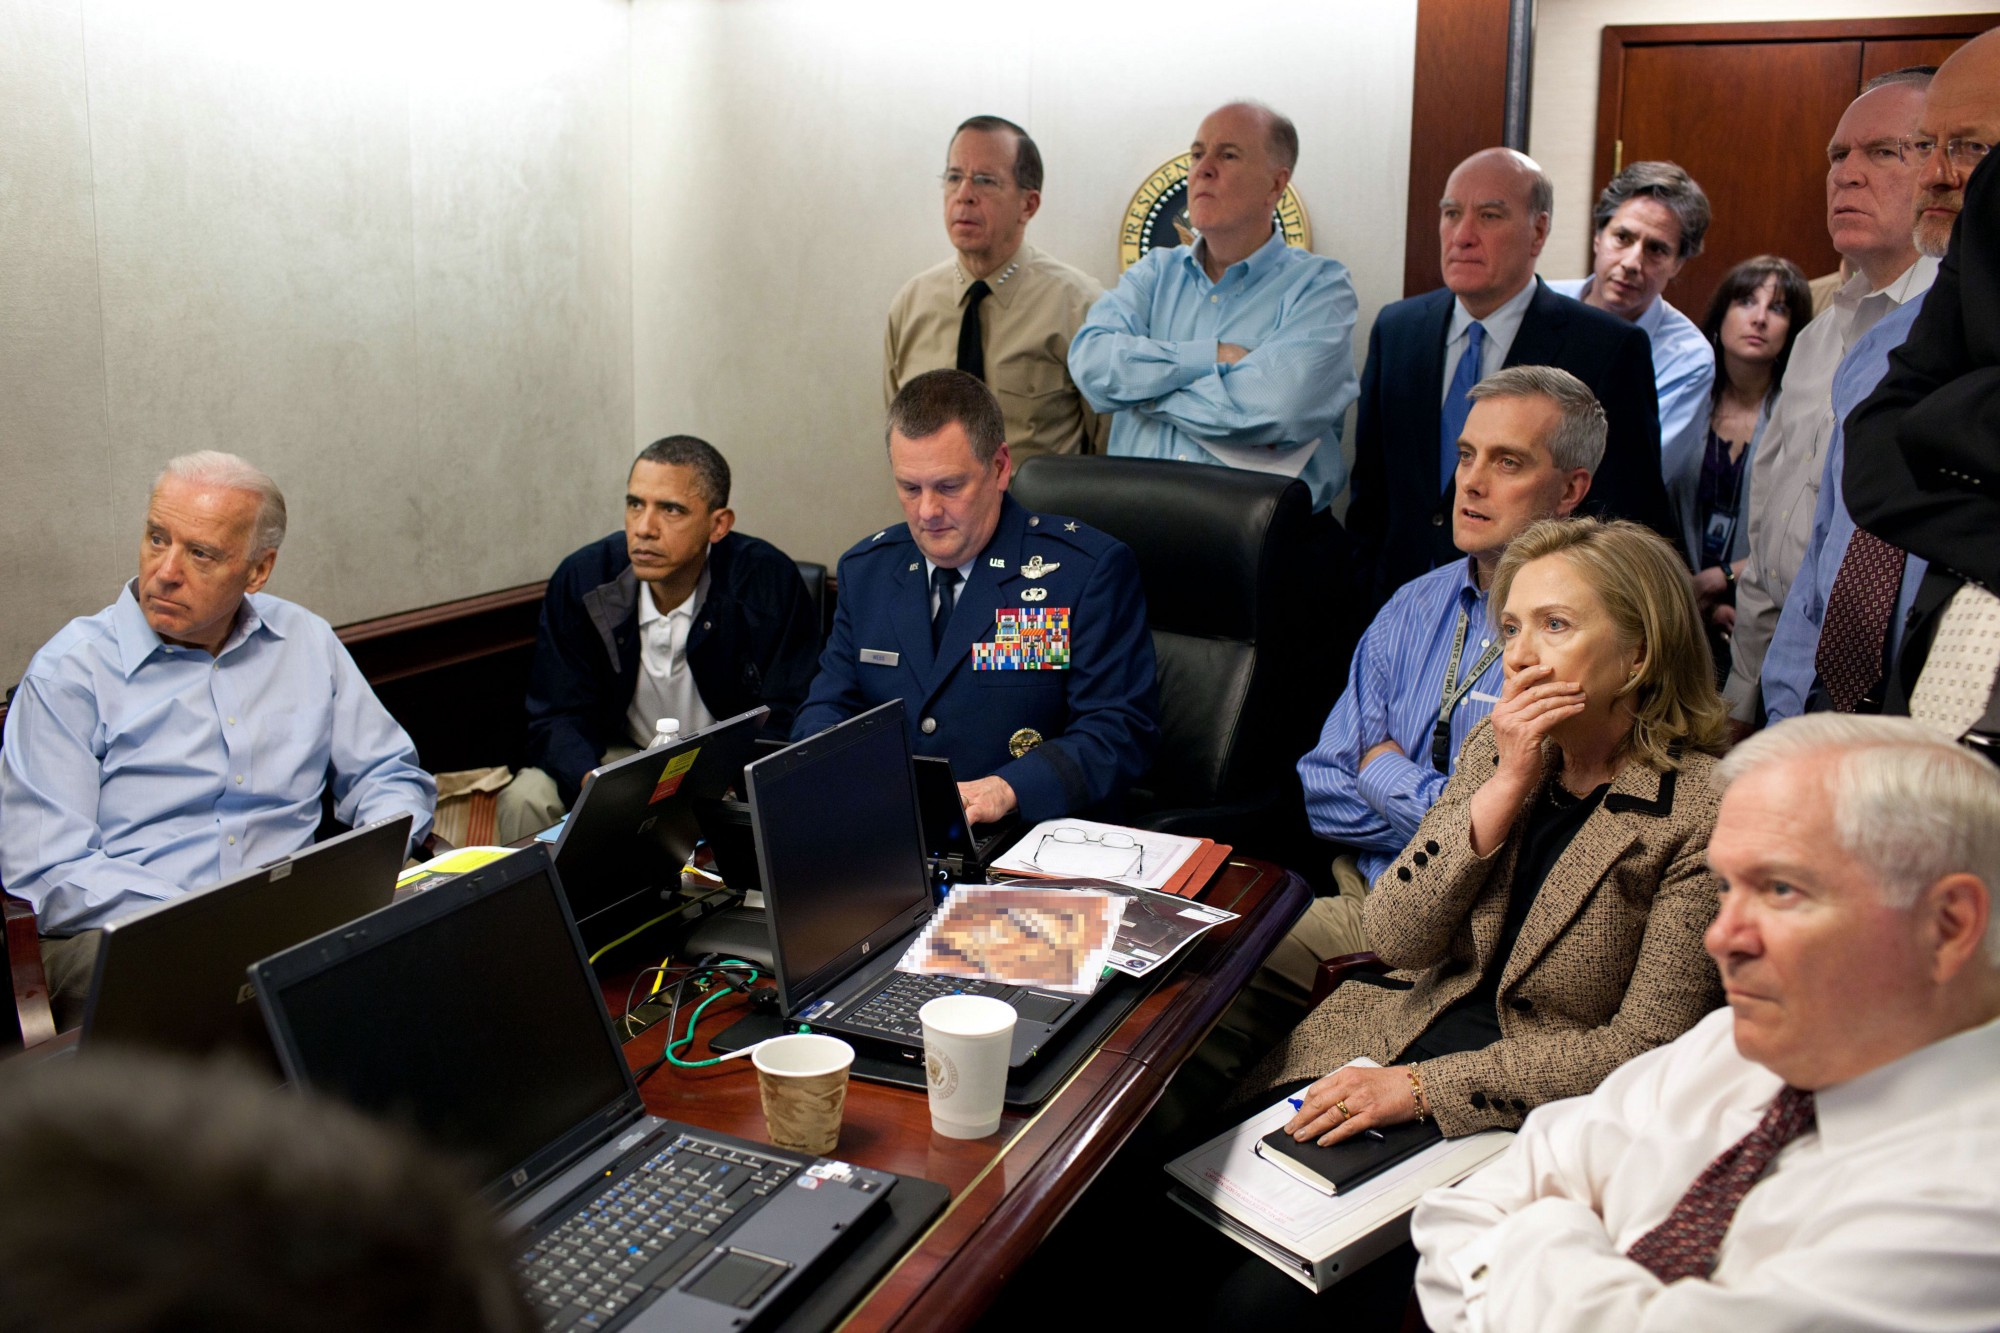 "White House officials watch the 2011 raid to kill Osama bin Laden in real-time""Š--""Šbut happen to miss the entire raid"